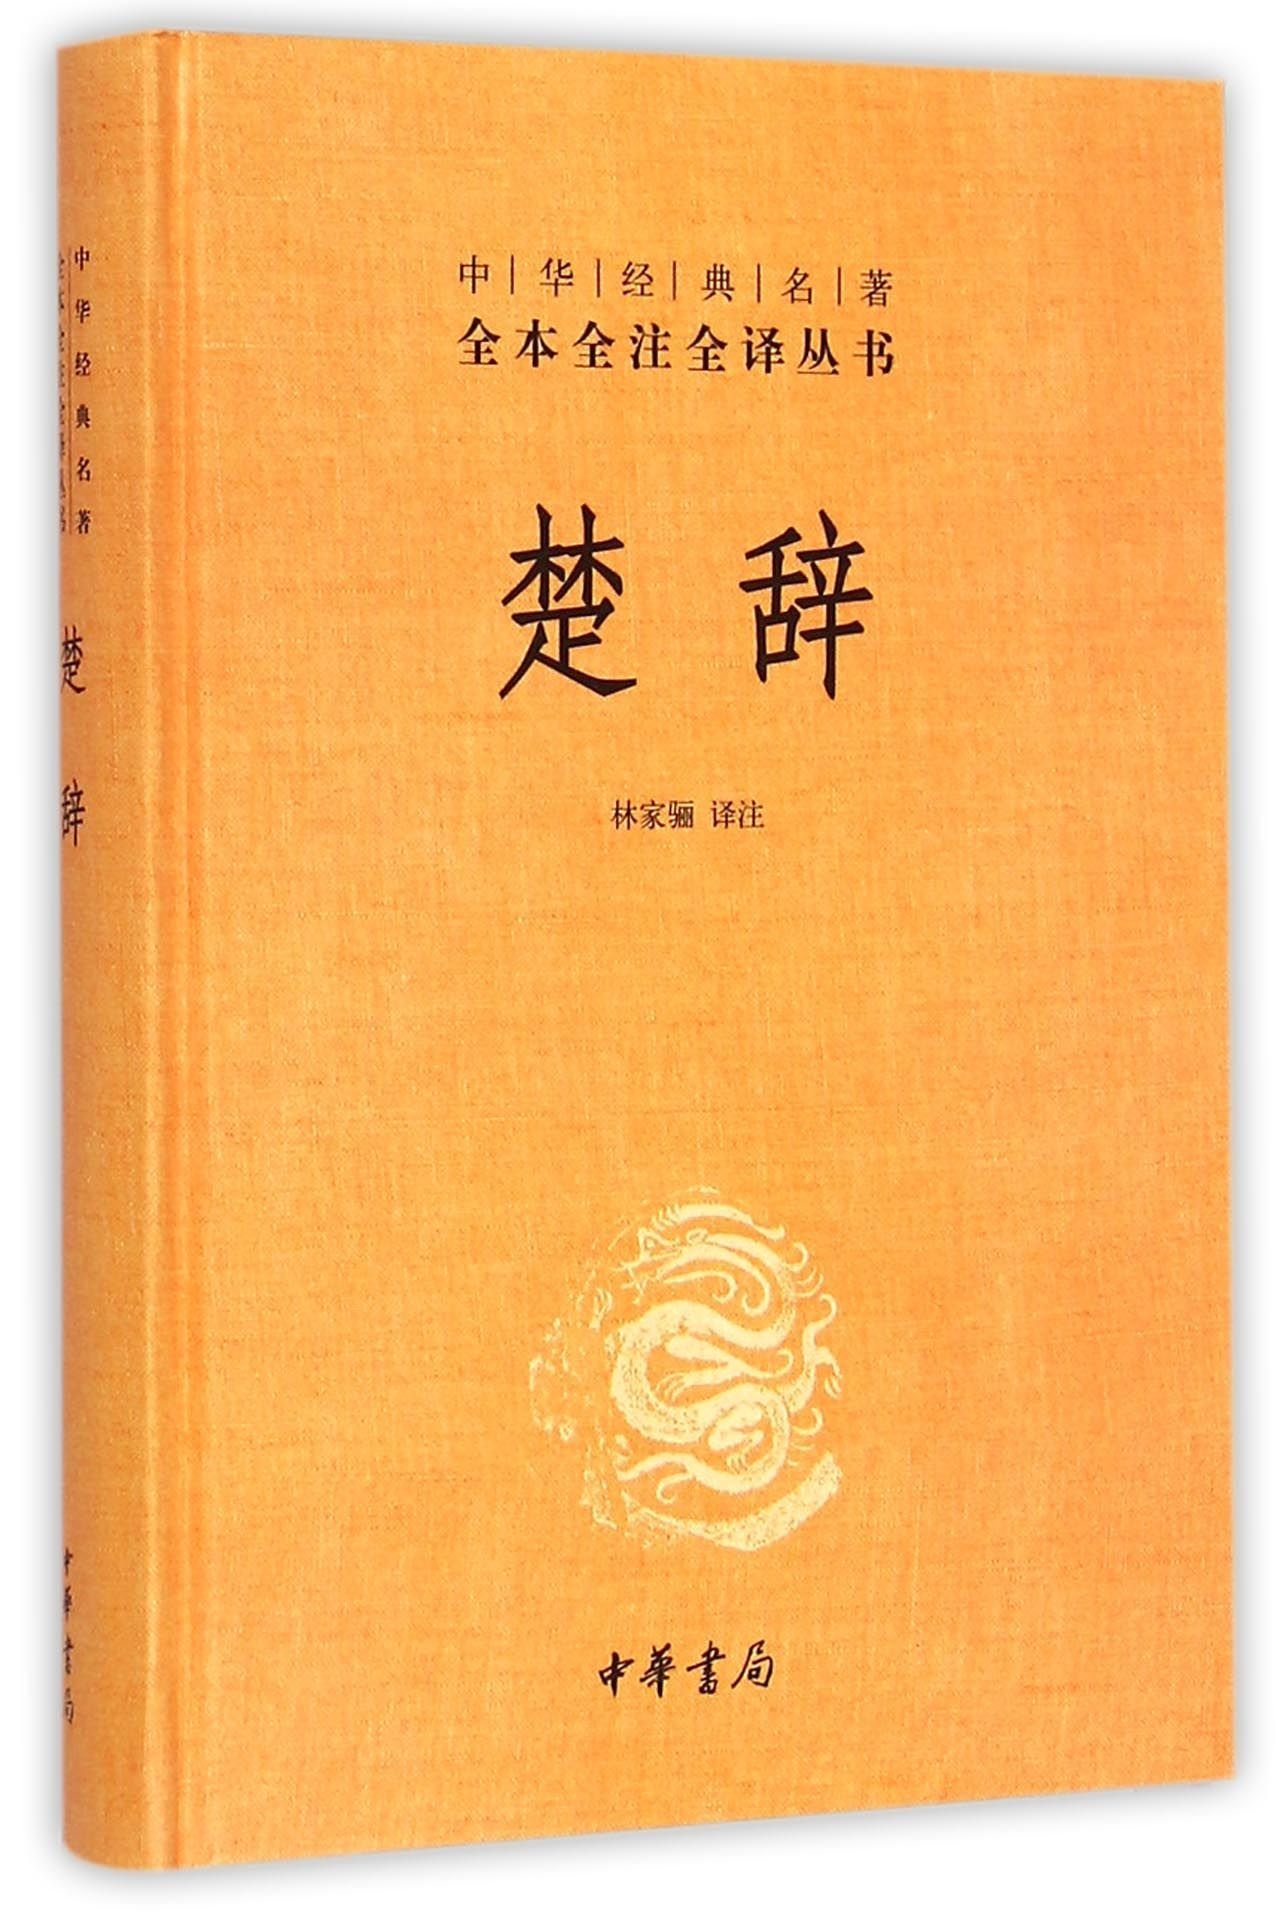 Chuci (Jing)/Complete Annotation And Translation Series Of Chinese Classic Books